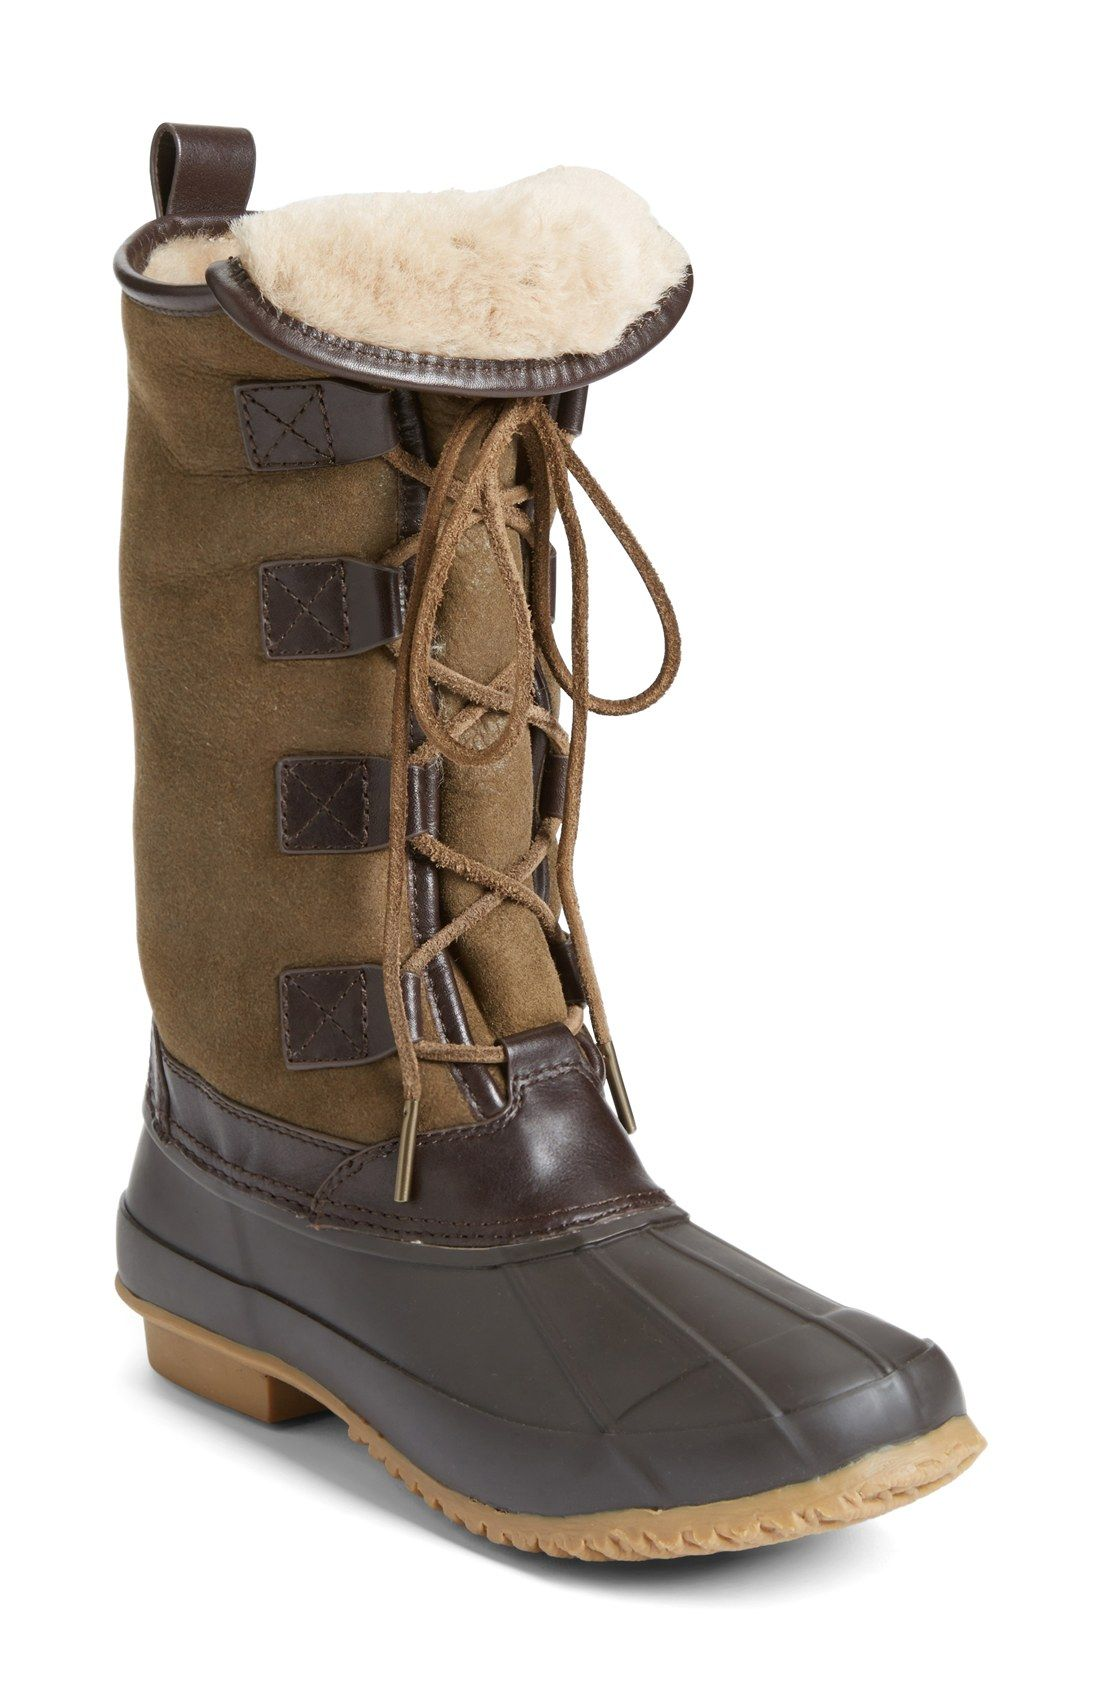 e21bfff0616 Loving this classic winter boot with a luxe twist by Tory Burch. These  adorable boots are made to keep the toes warm while a sturdy rubber toe  allows for ...